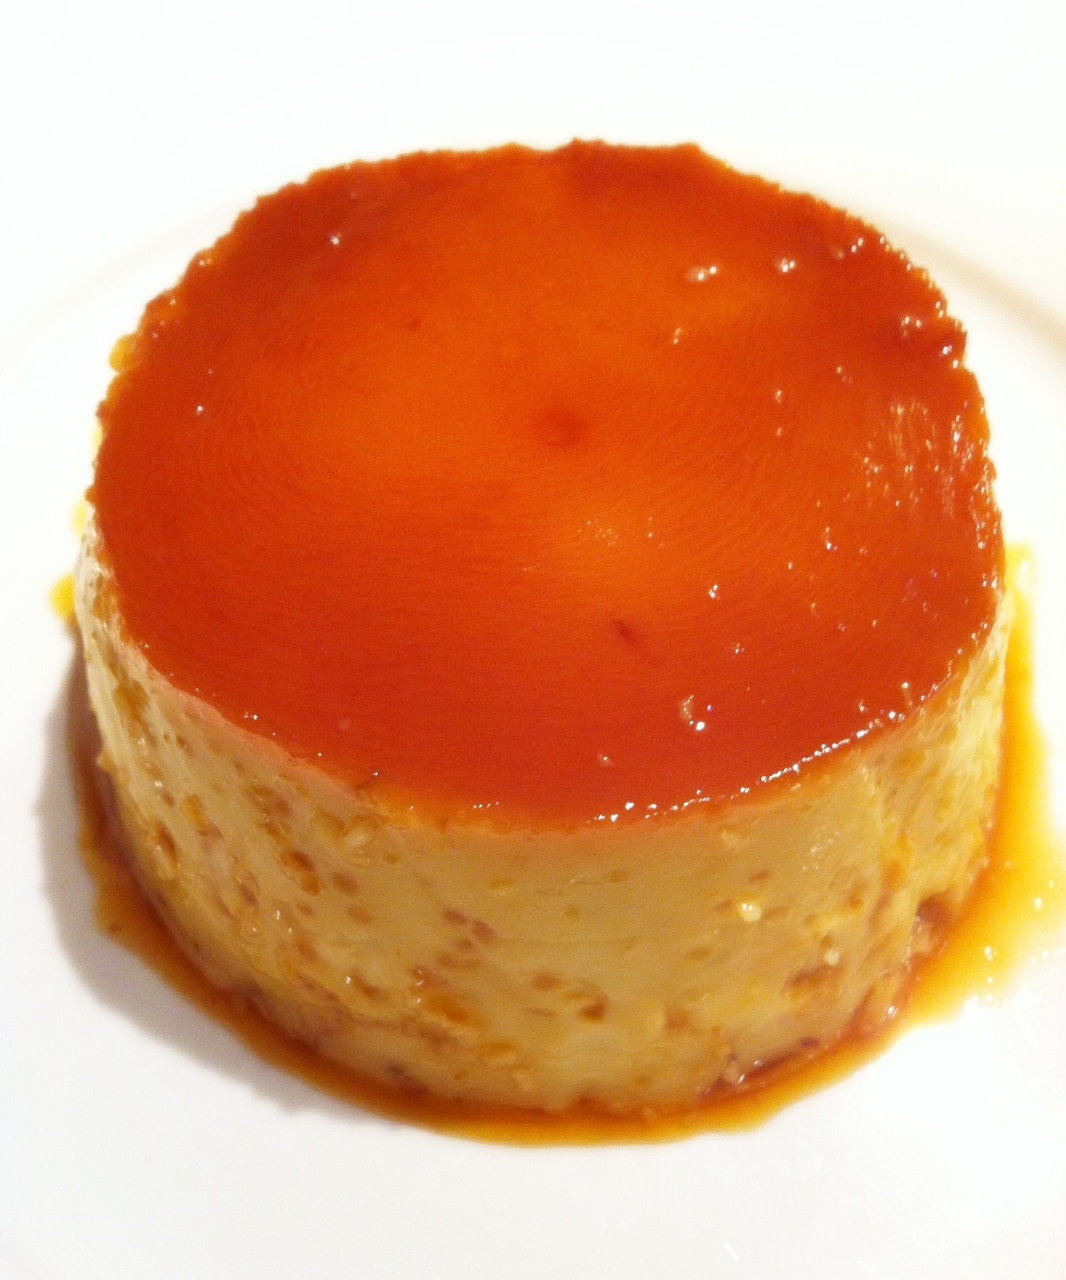 Candice's Cusina: Celebrate with Leche Flan